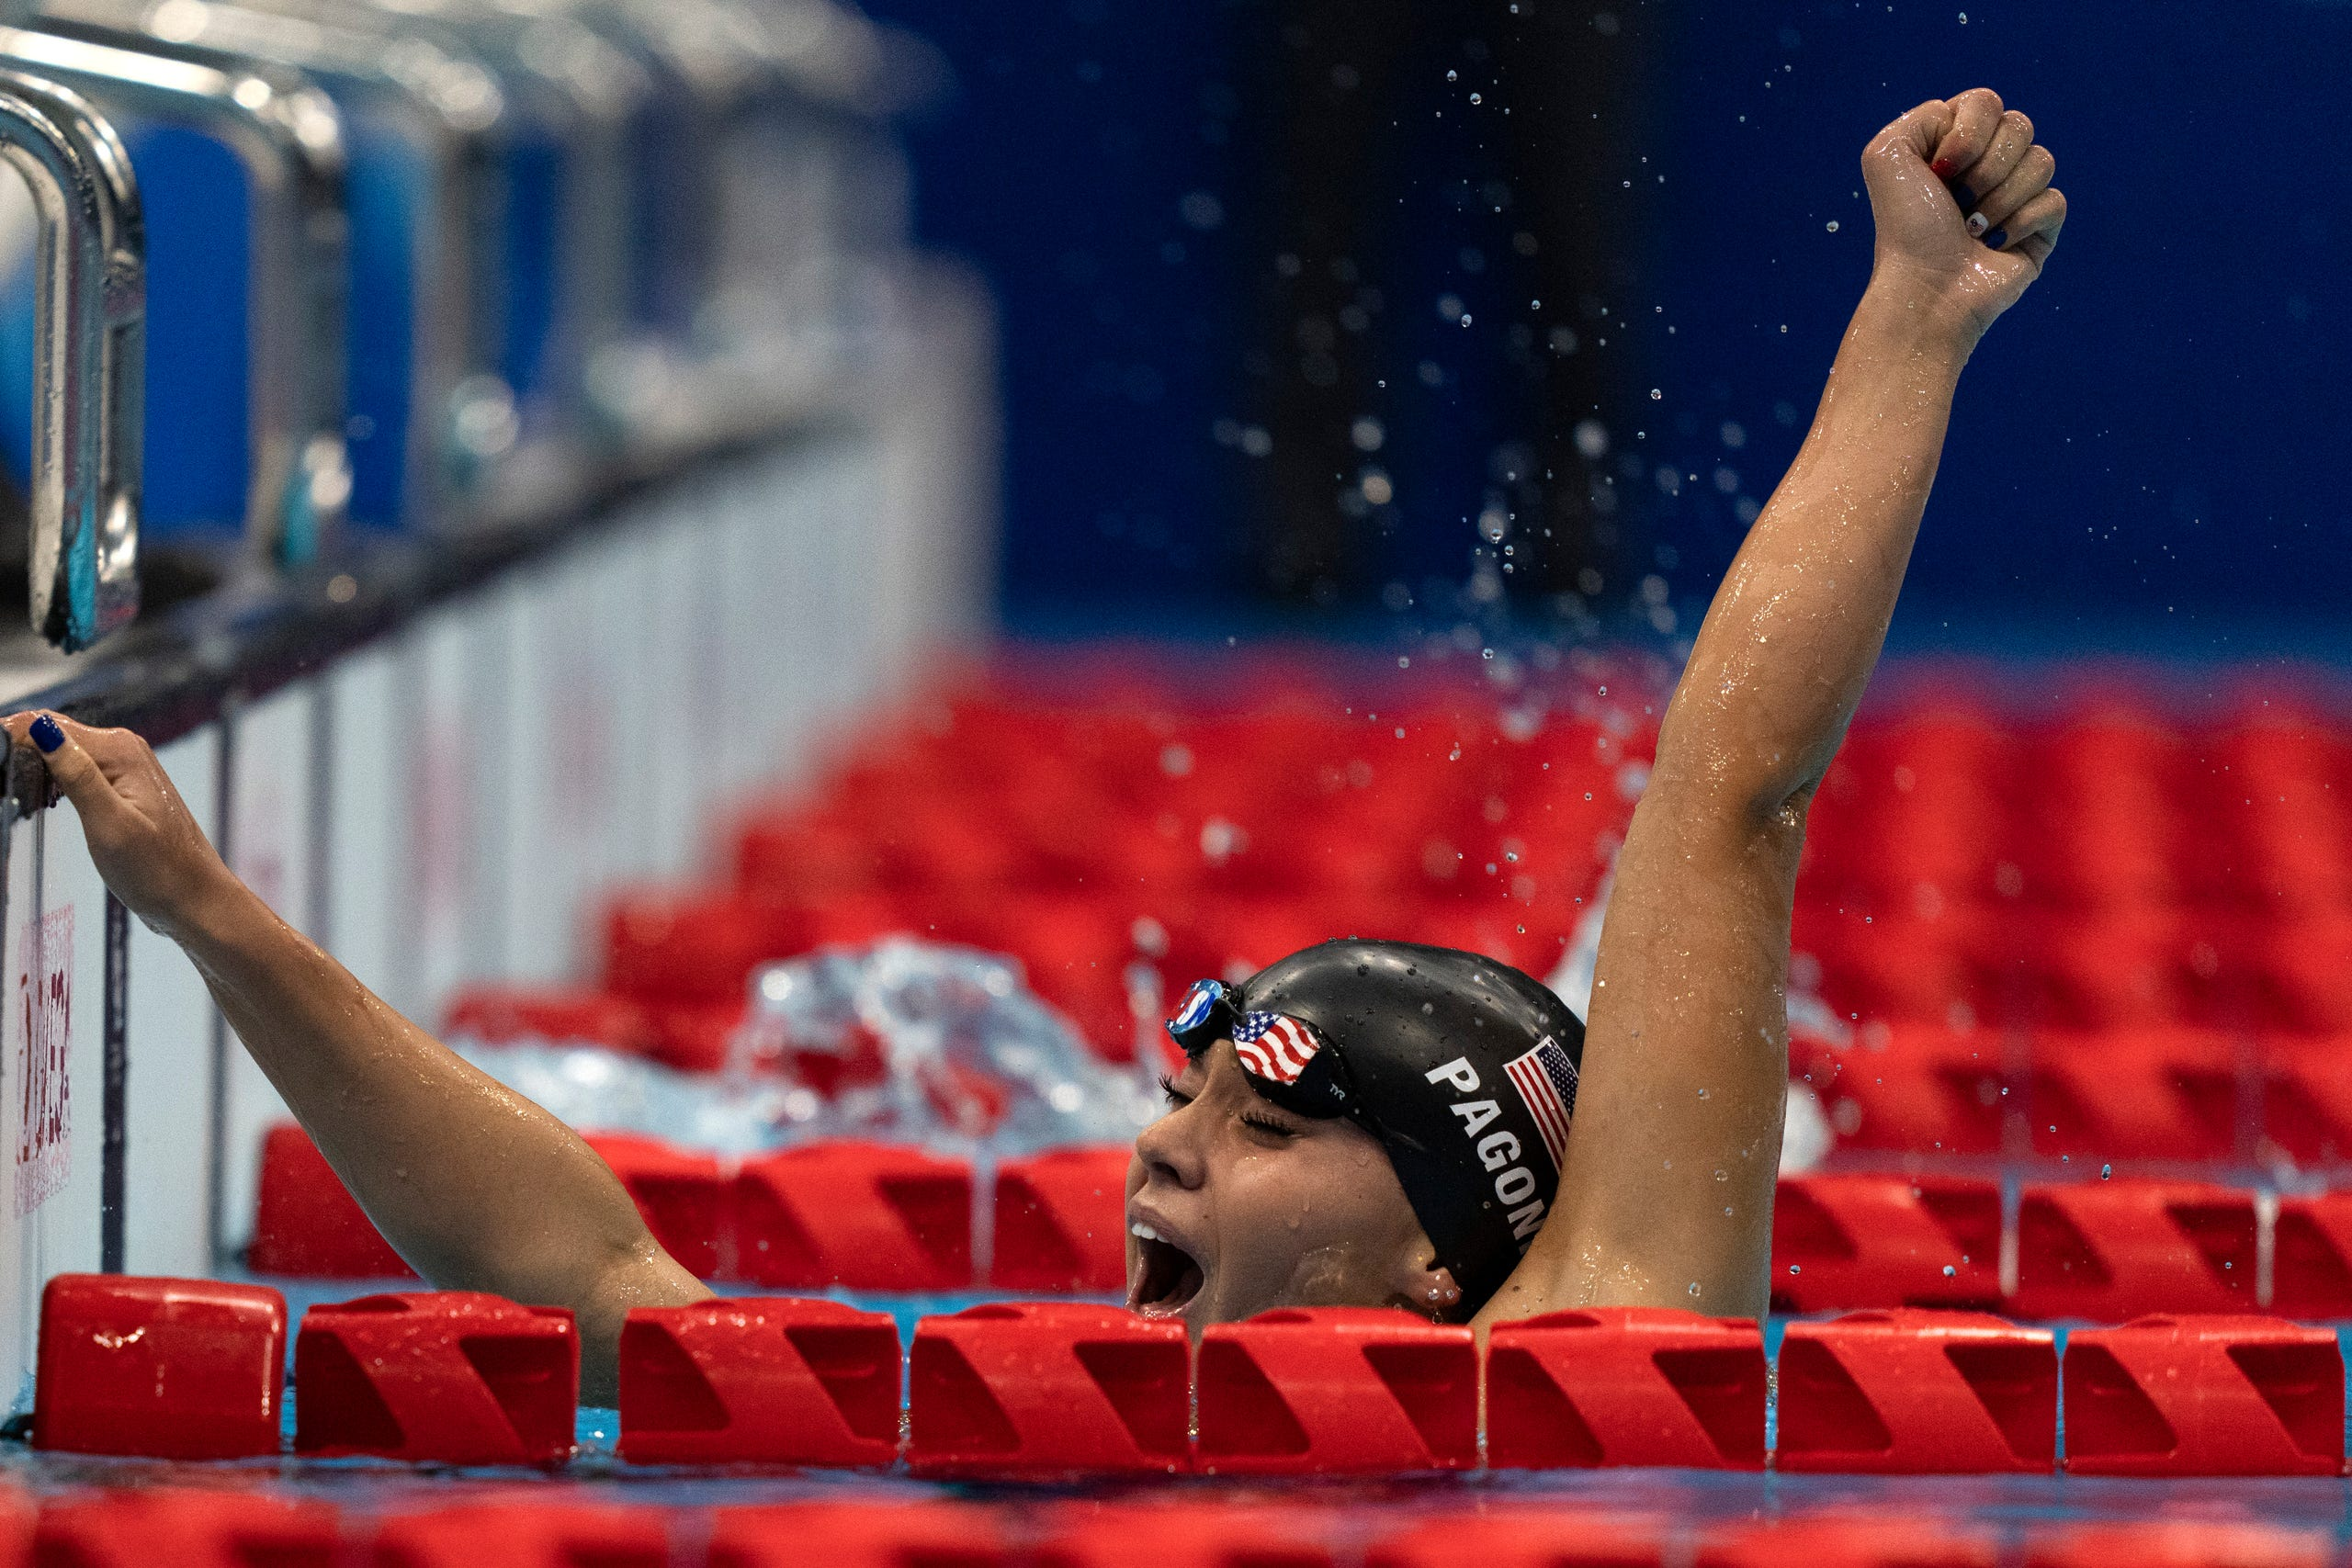 August 26, 2021:  Anastasia Agonis, from USA, celebrates after winning Women's 400m Freestyle - S11 Final at the Tokyo Aquatics Centre during the Tokyo 2020 Paralympic Games, in Tokyo, Japan.